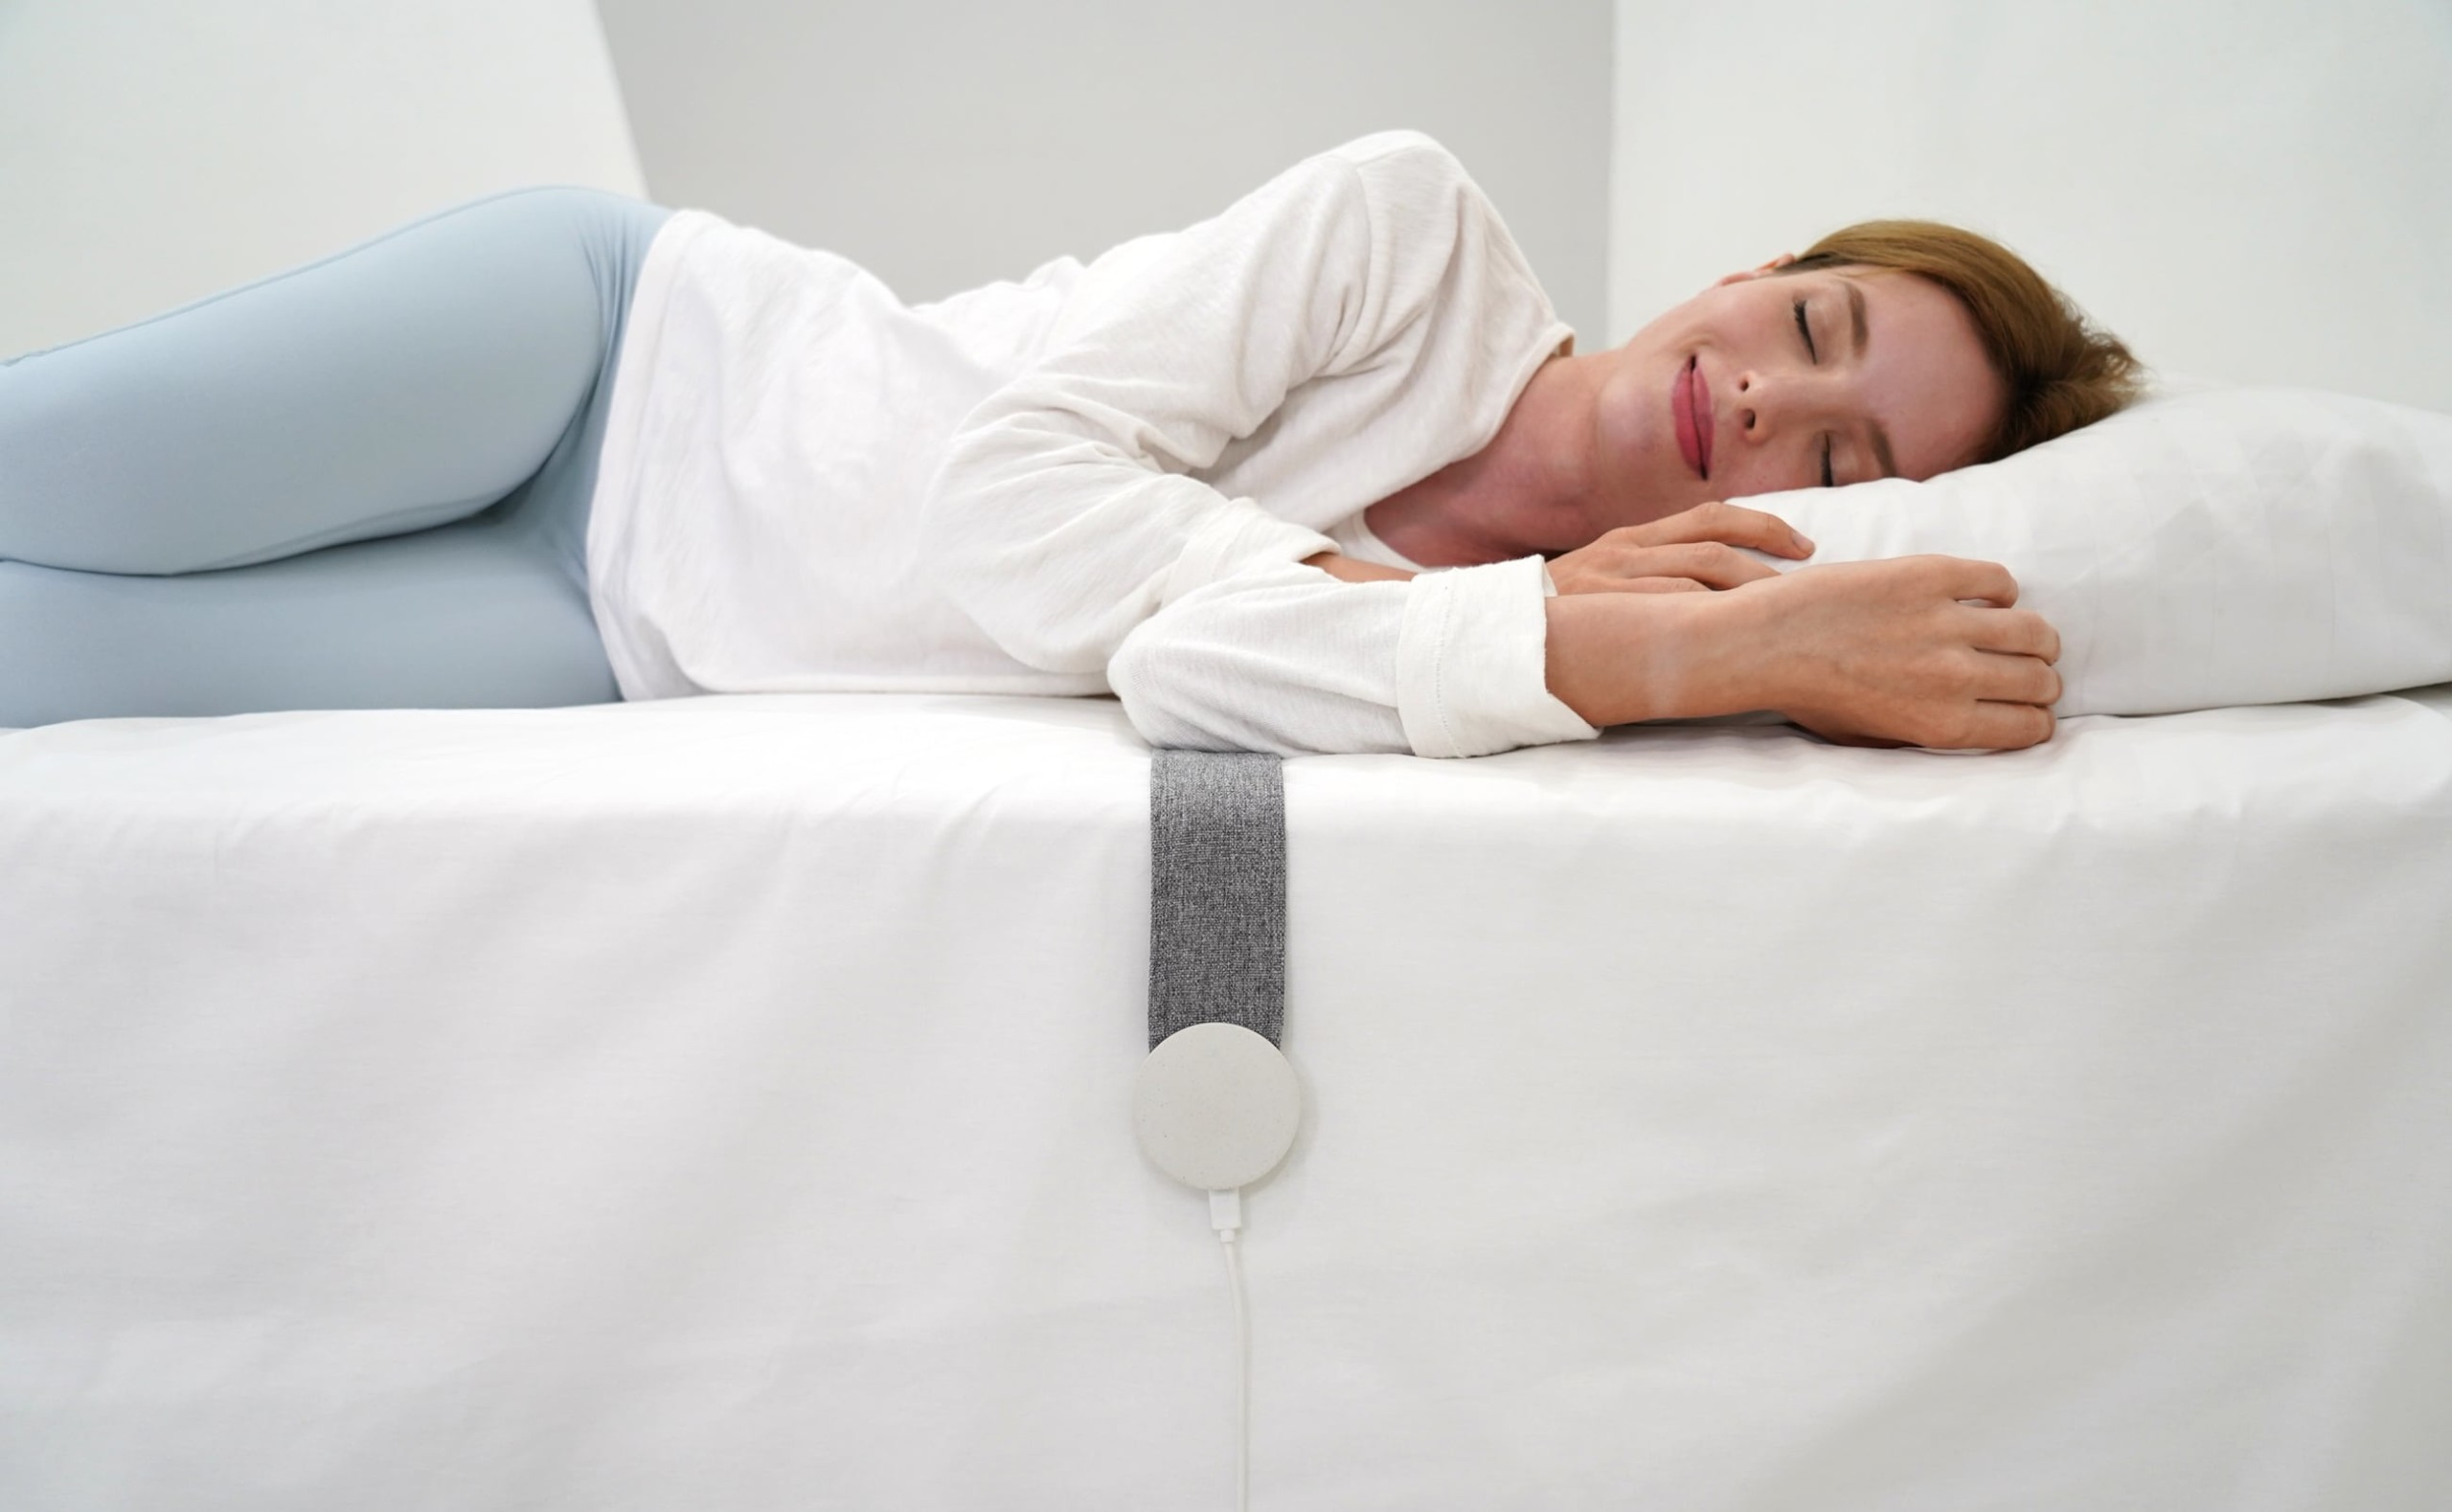 RESPIO Accurate Biometric Sleep Coach uses intelligent tracking to help you sleep better